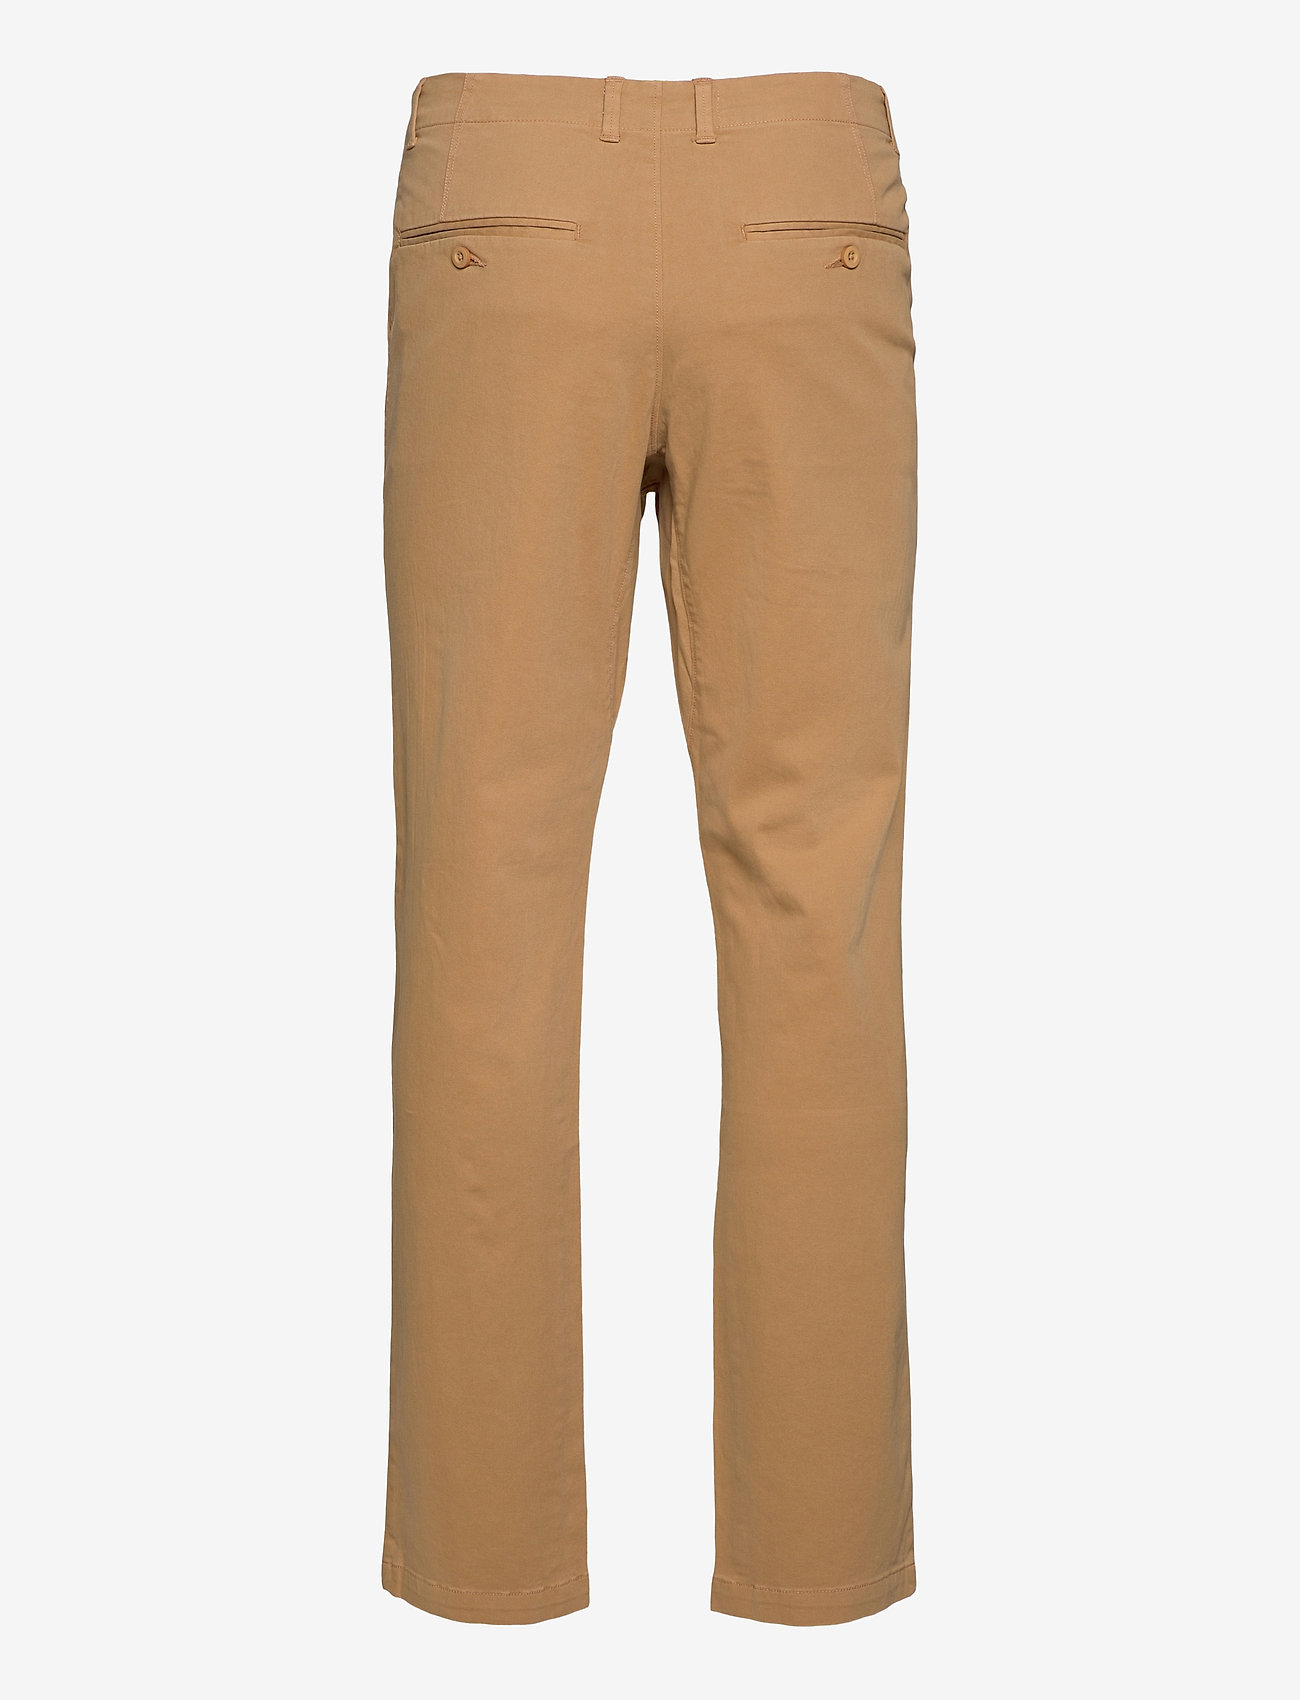 DEDICATED Chino Pants Sundsvall - Bukser KHAKI - Menn Klær